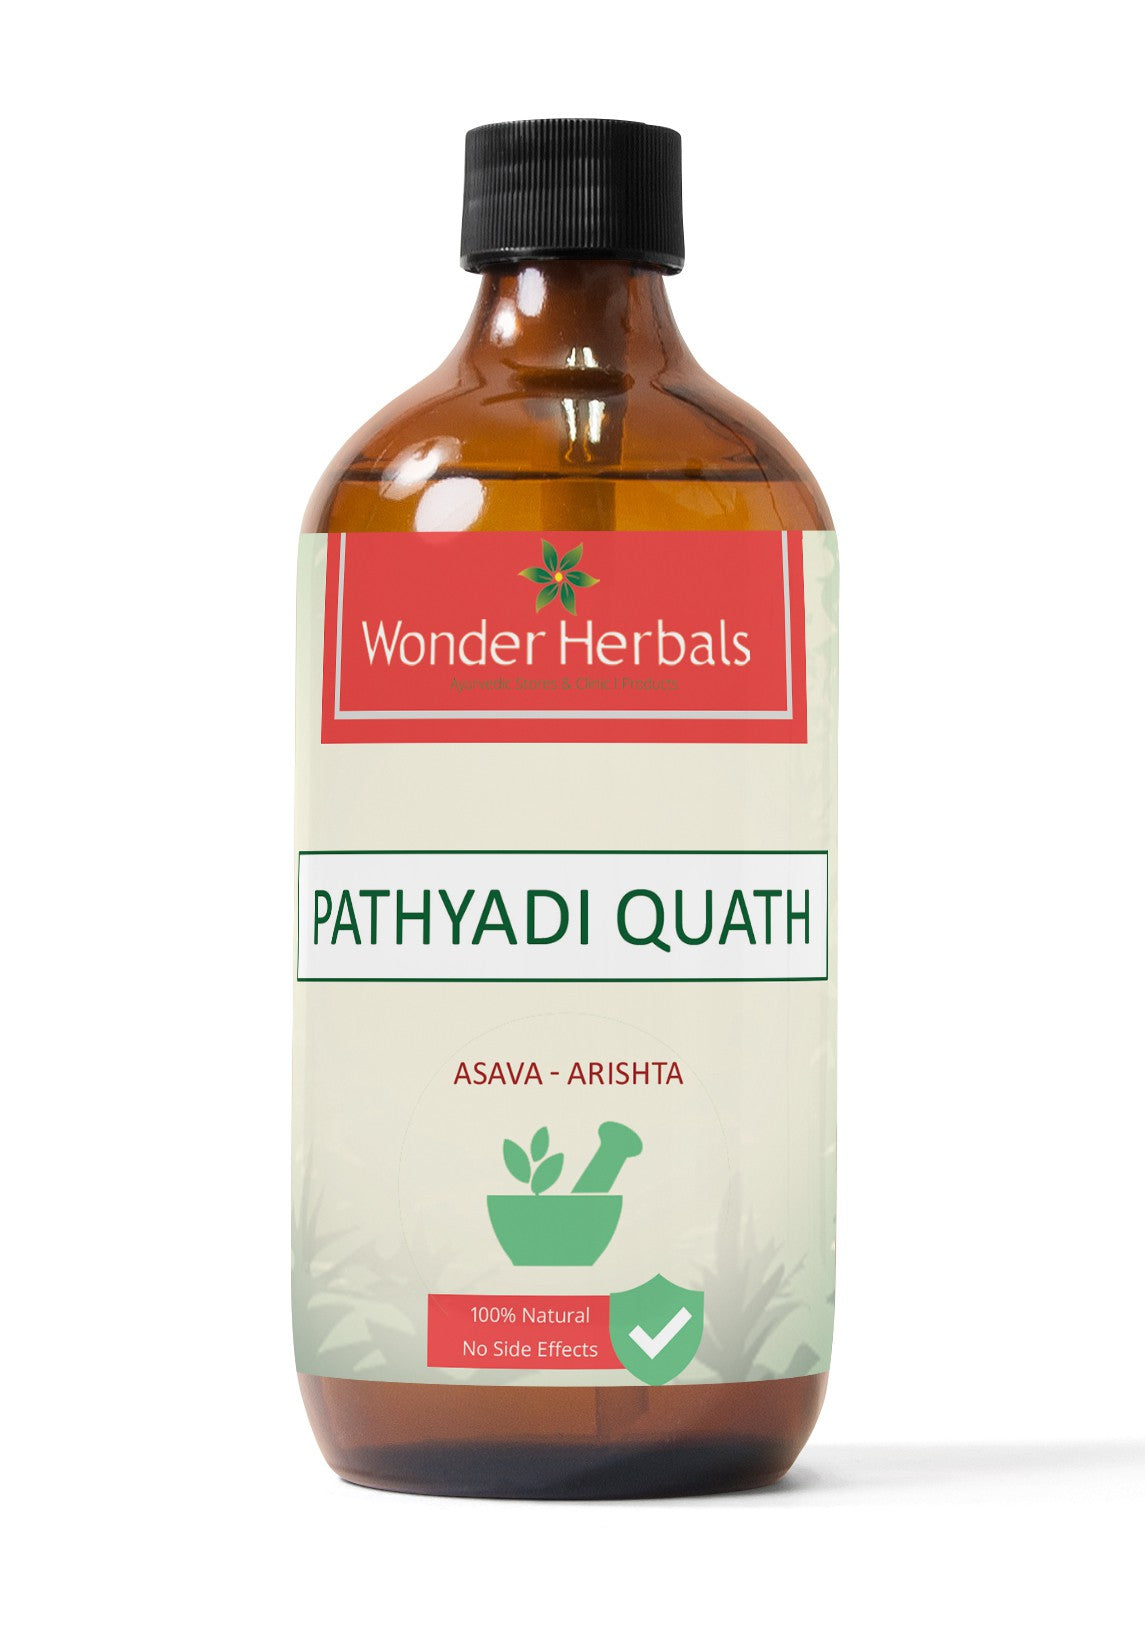 Pathyadi Quath - Wonderherbals